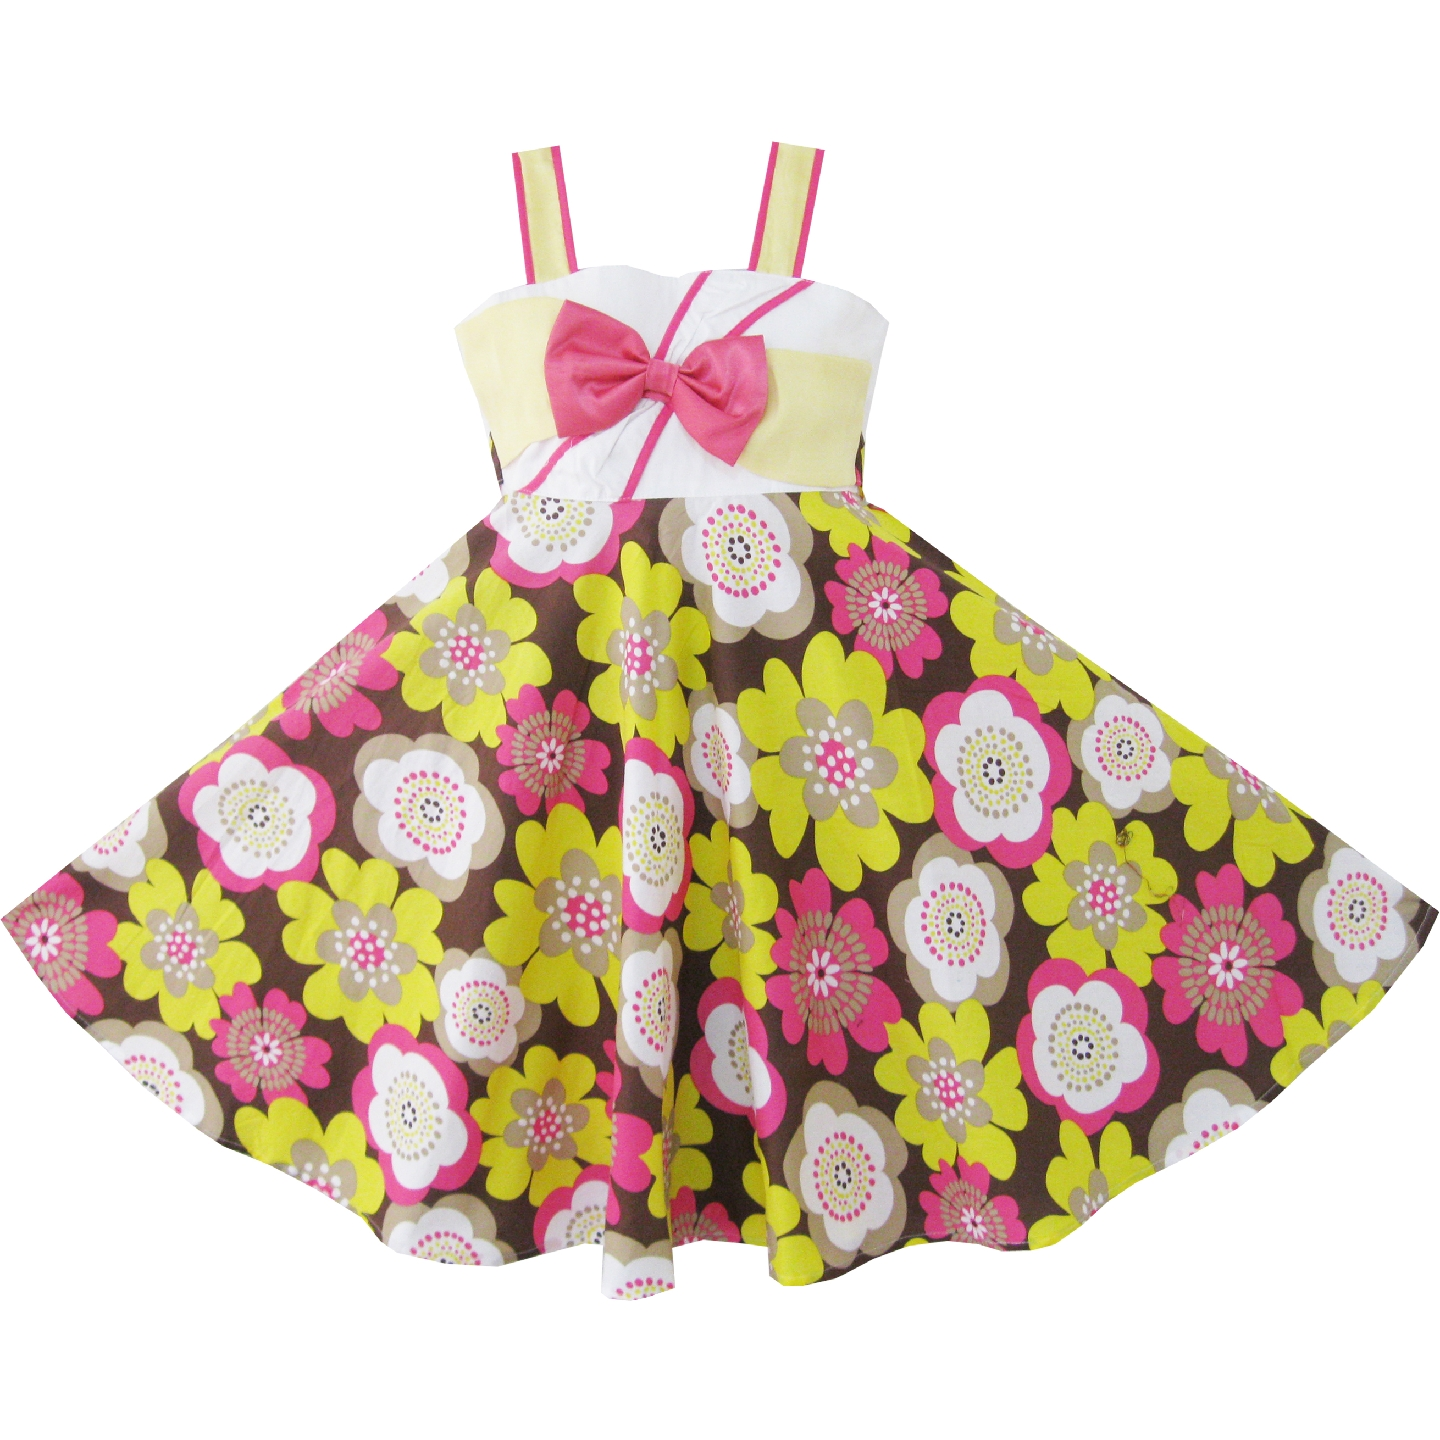 Girls Dress Yellow Pink Flower Party Sundress Child Clothes Cotton 2019 Summer Princess Wedding Dresses Kids Clothes PageantGirls Dress Yellow Pink Flower Party Sundress Child Clothes Cotton 2019 Summer Princess Wedding Dresses Kids Clothes Pageant